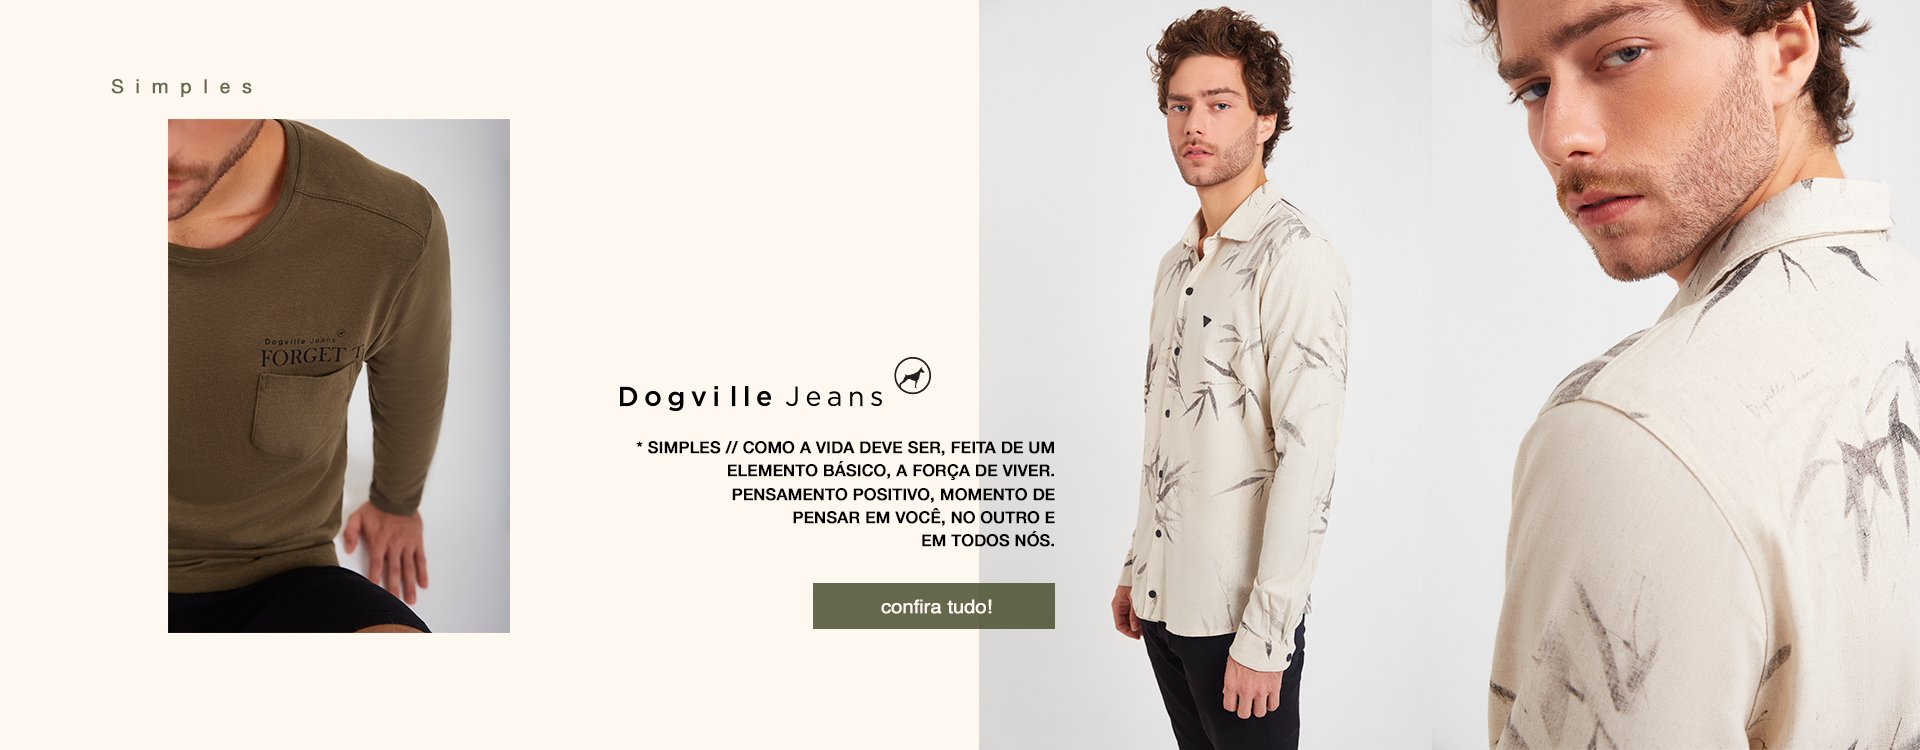 Dogville Jeans 2